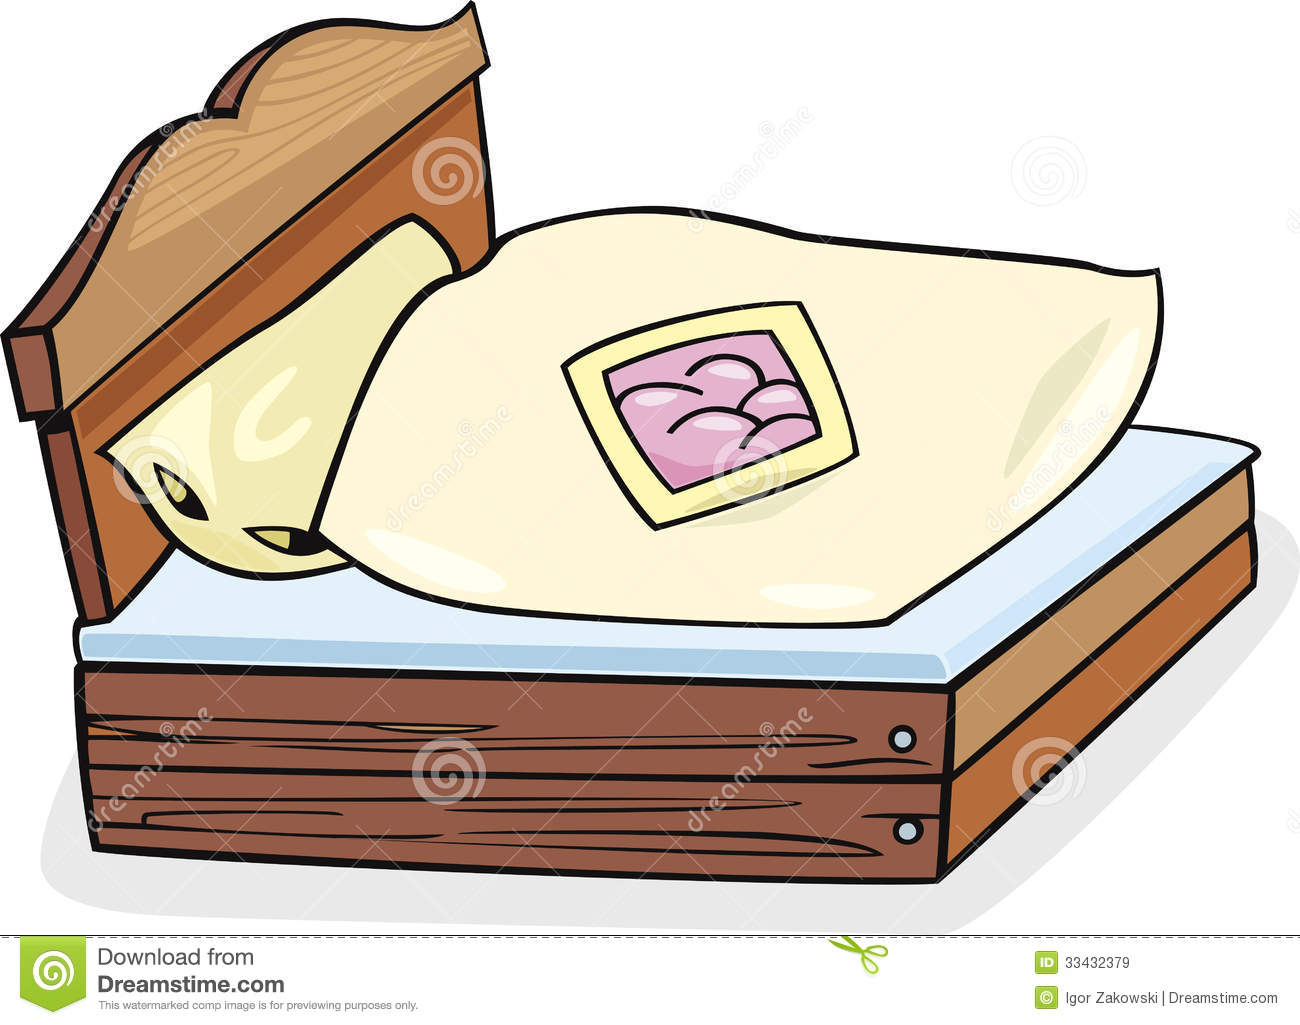 Kids Bed Clipart | Clipart Panda - Free Clipart Images